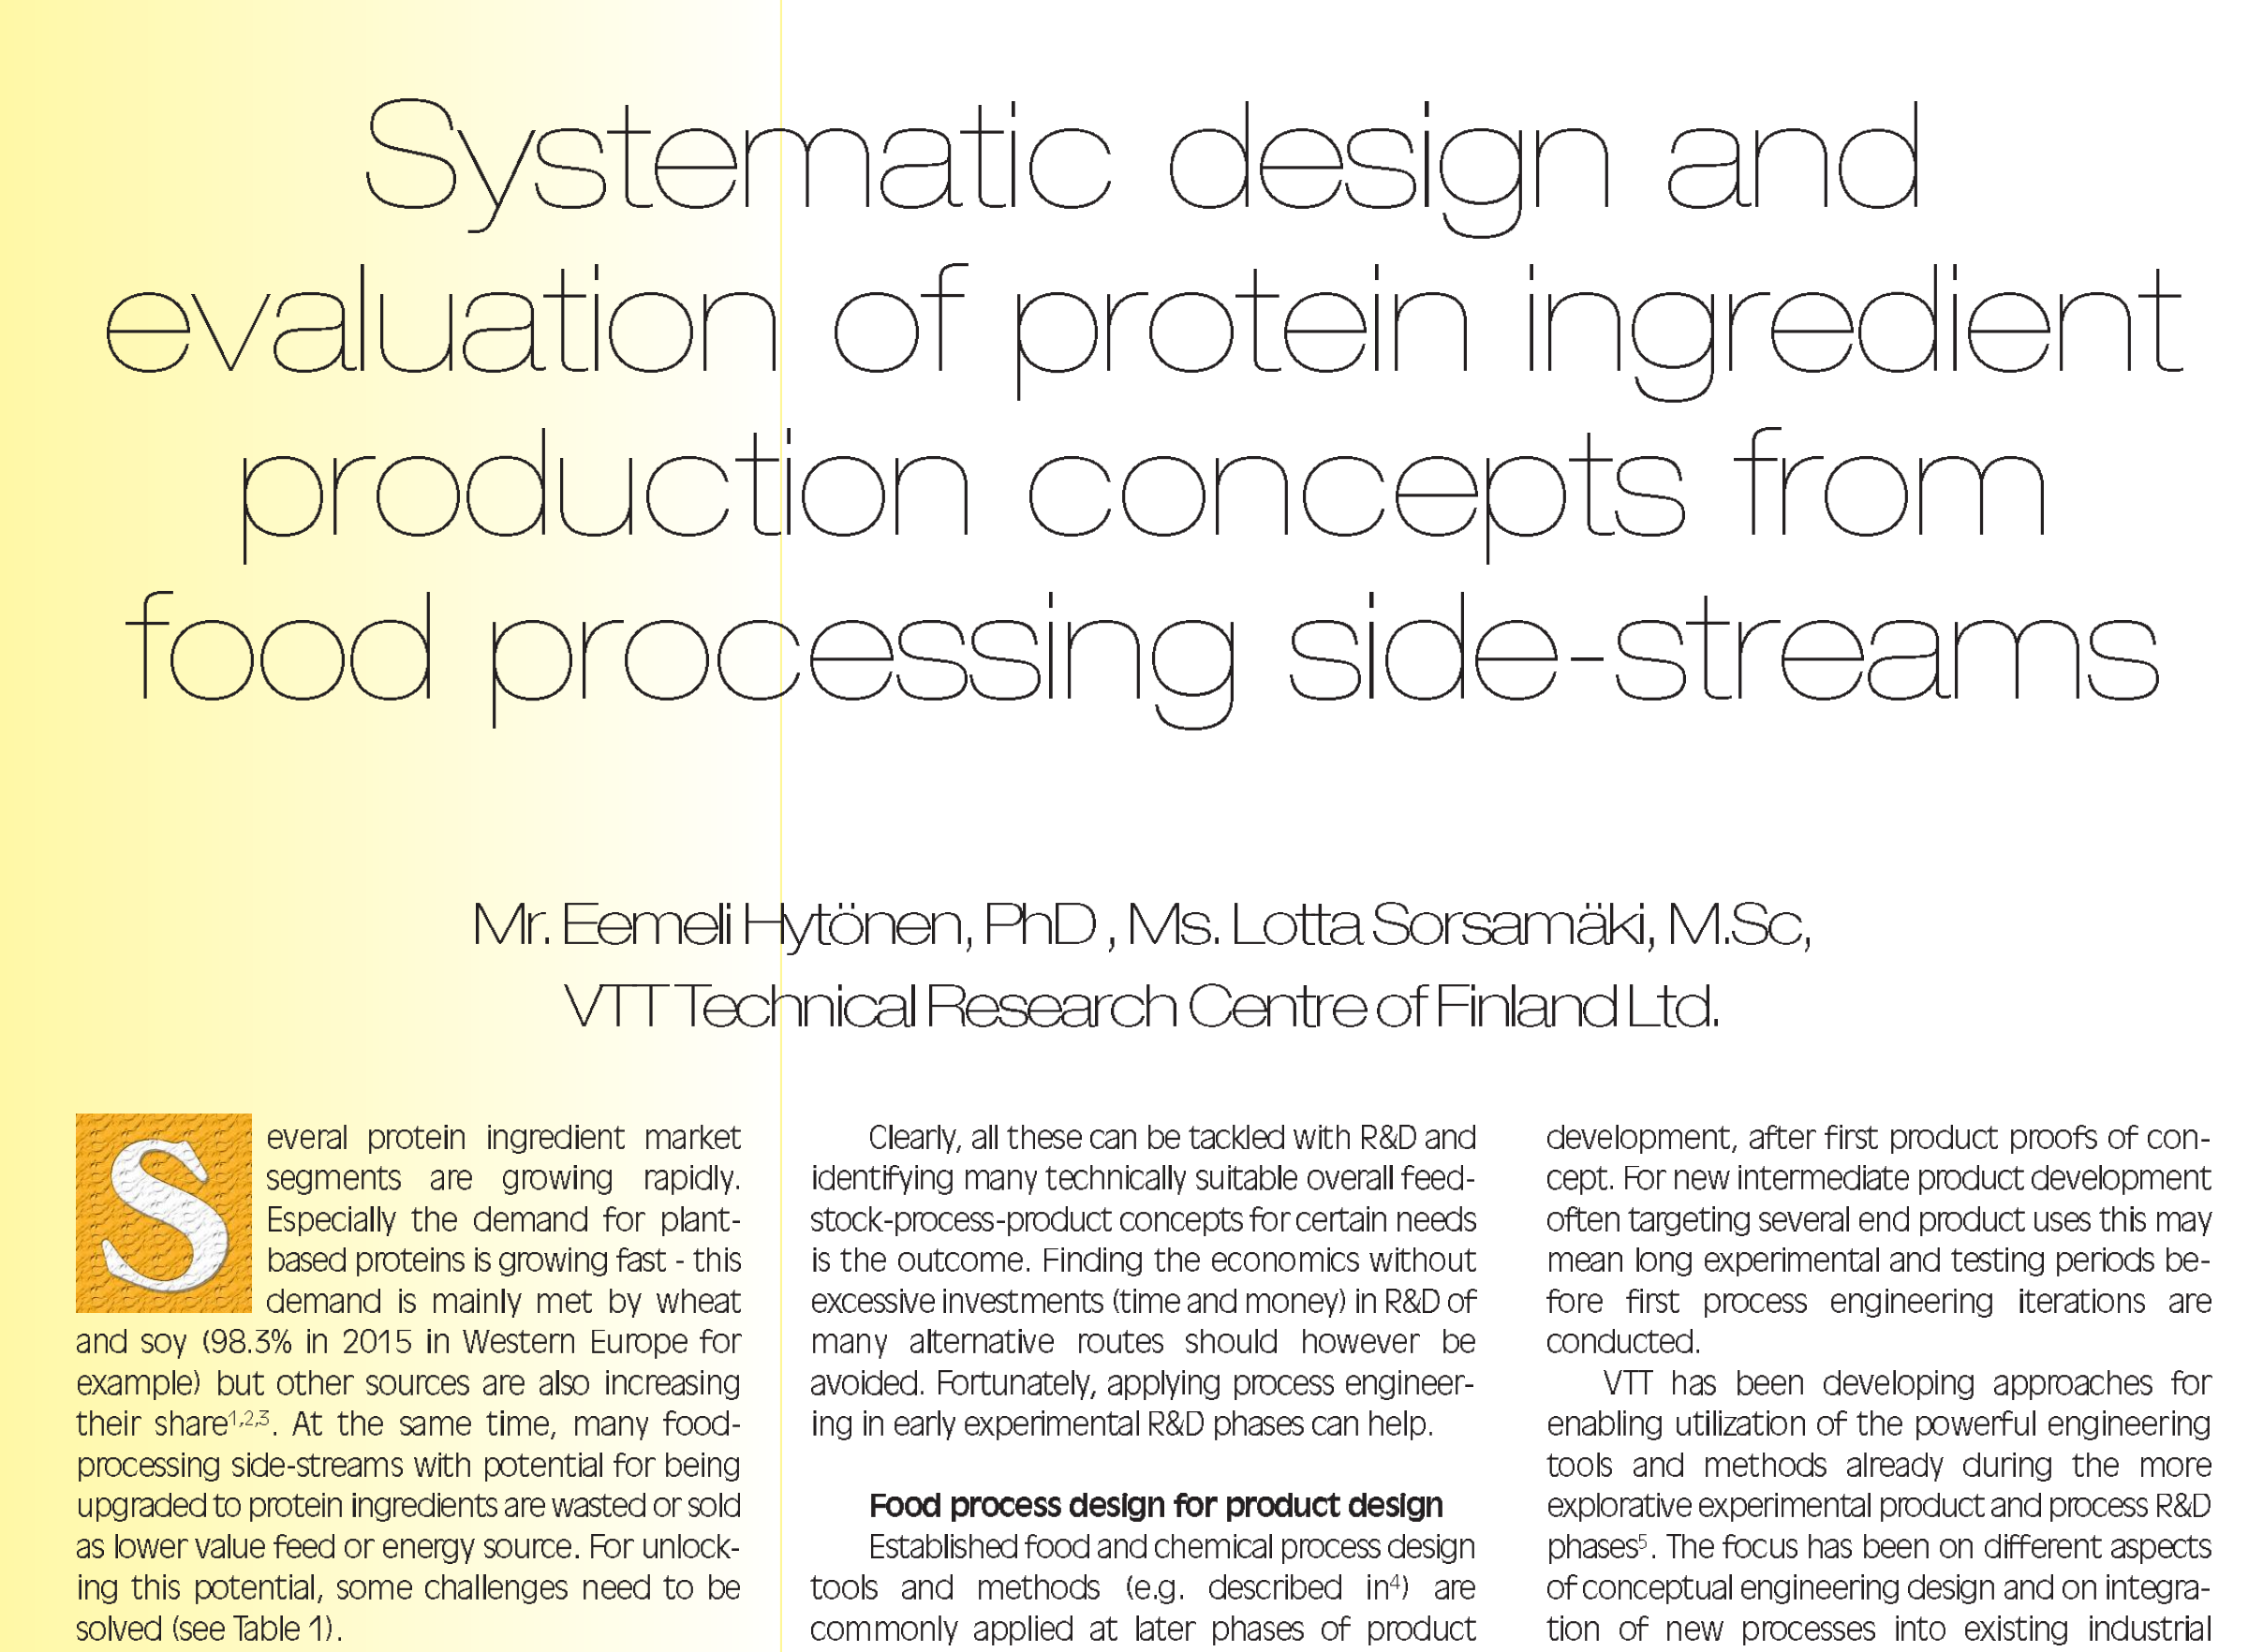 Aug 2018 – Great Article Of VTT In Innovations In Food Technology On Systematic Design And Evaluation Of Protein Ingredient Production Concepts